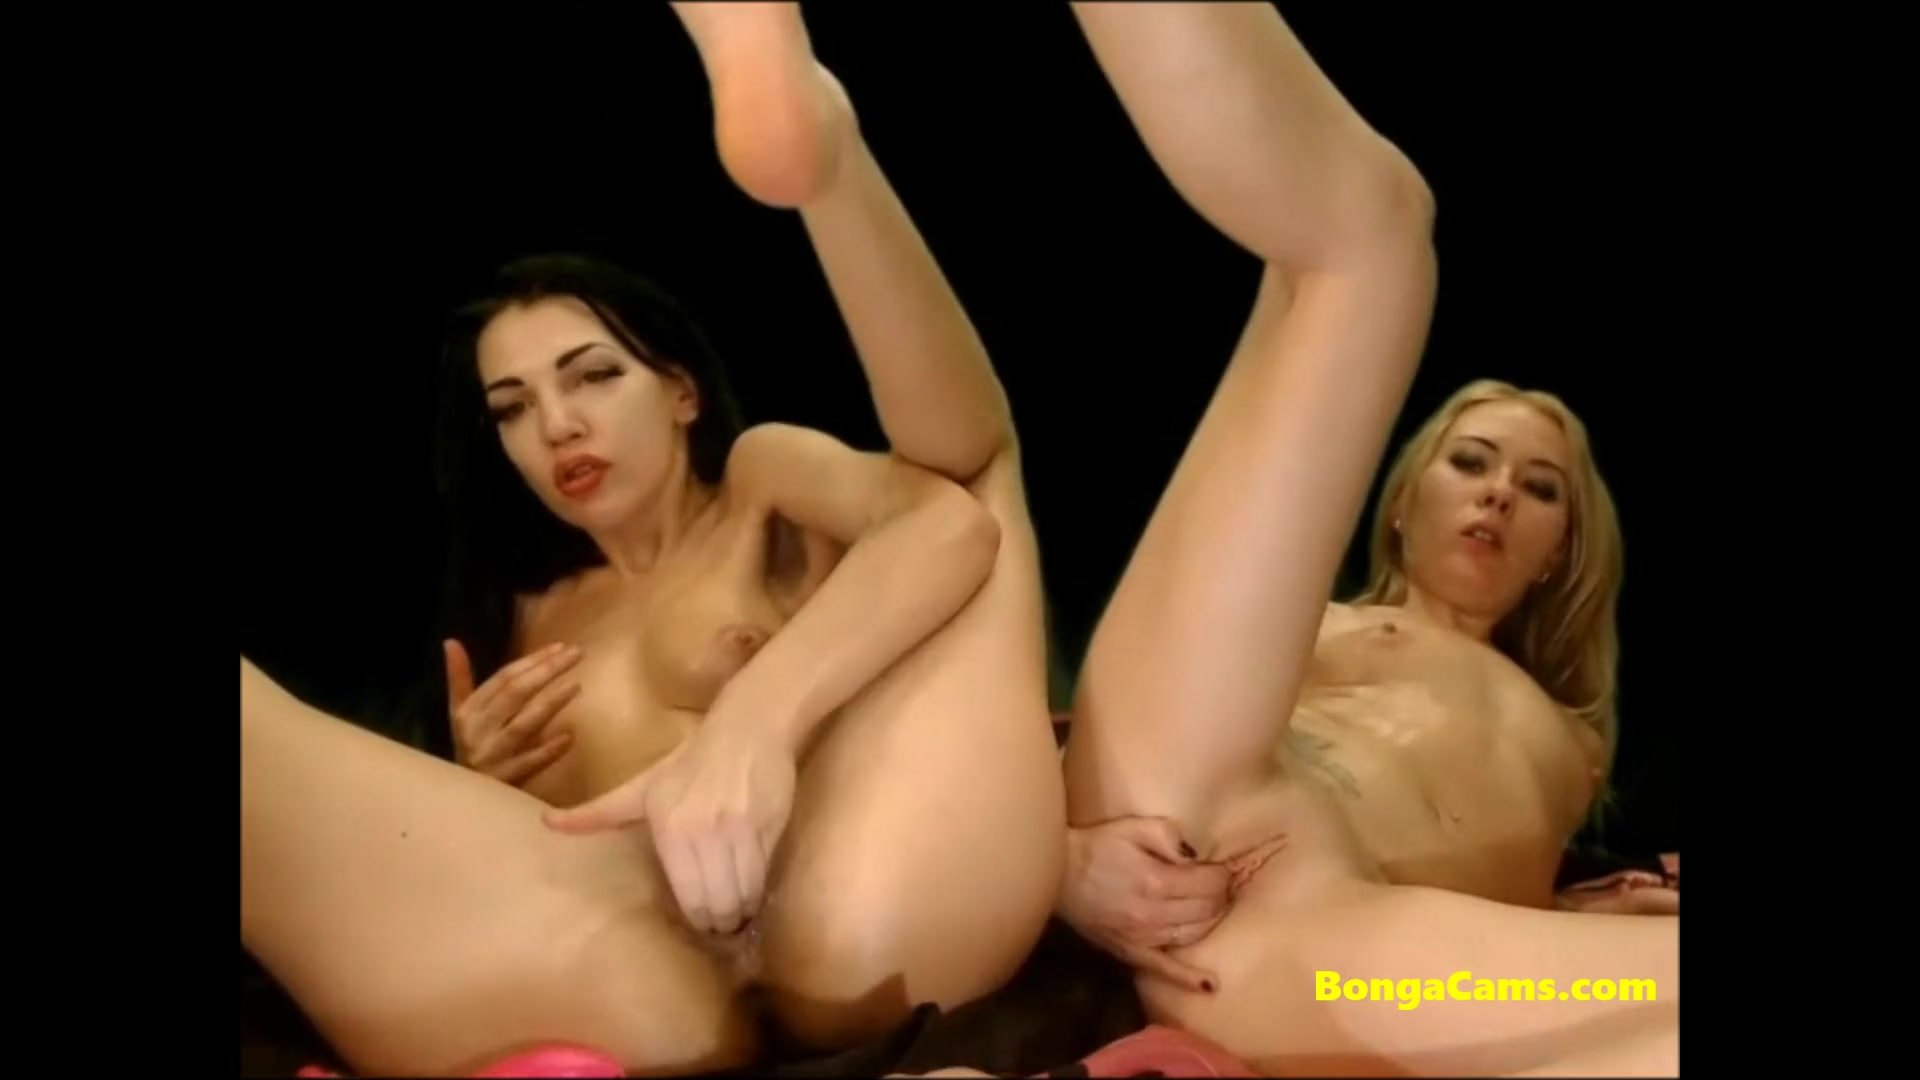 Two busty babes having the most passionate lesbian sex and scissoring